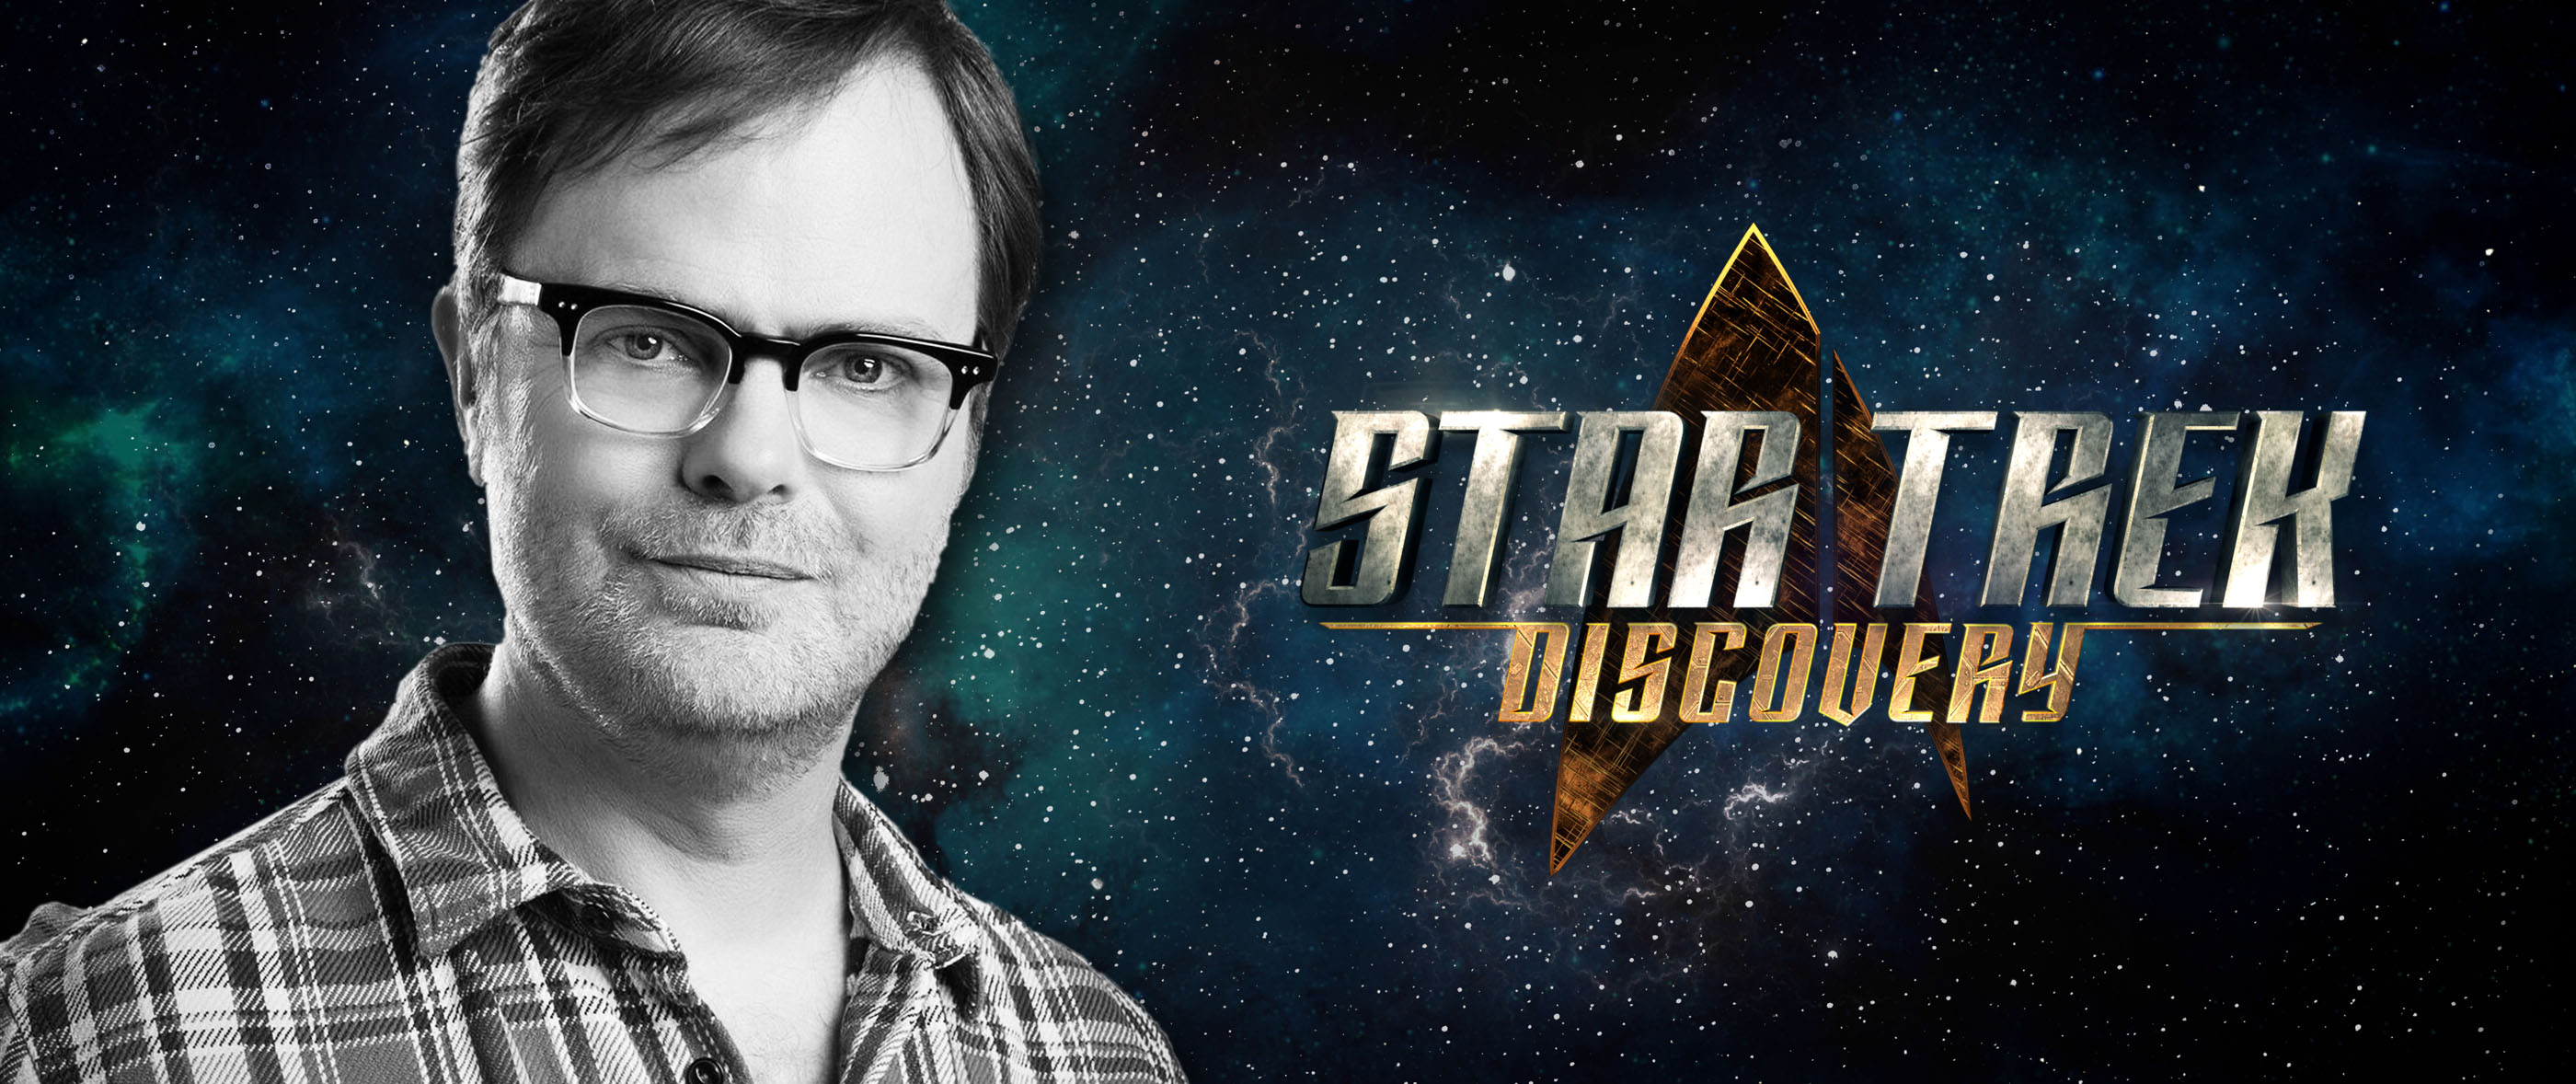 Rainn Wilson in Star Trek Discovery